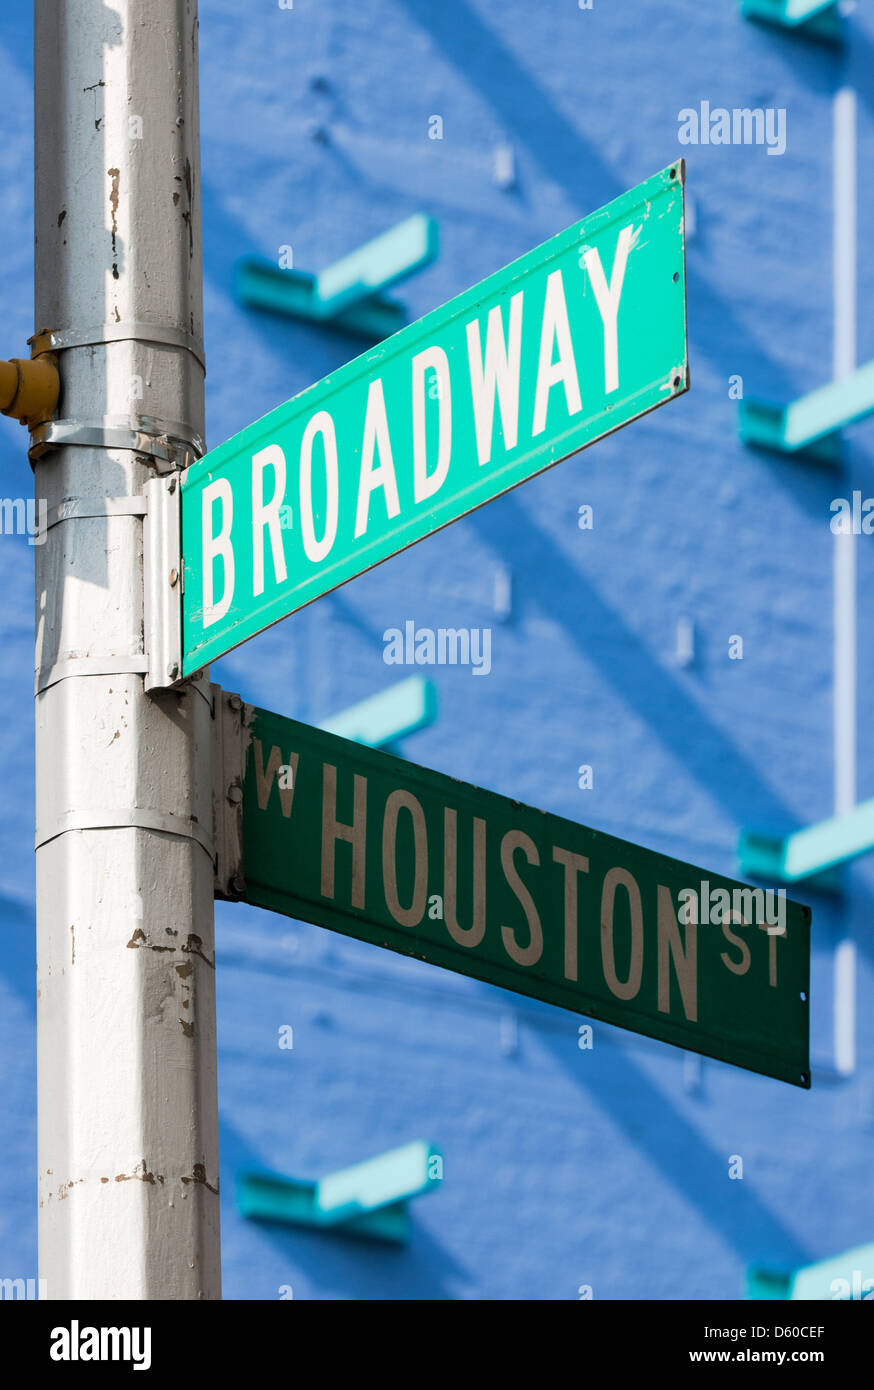 Broadway, Houston street, street signs in New York City, New York, USA, North America - Image taken from public - Stock Image